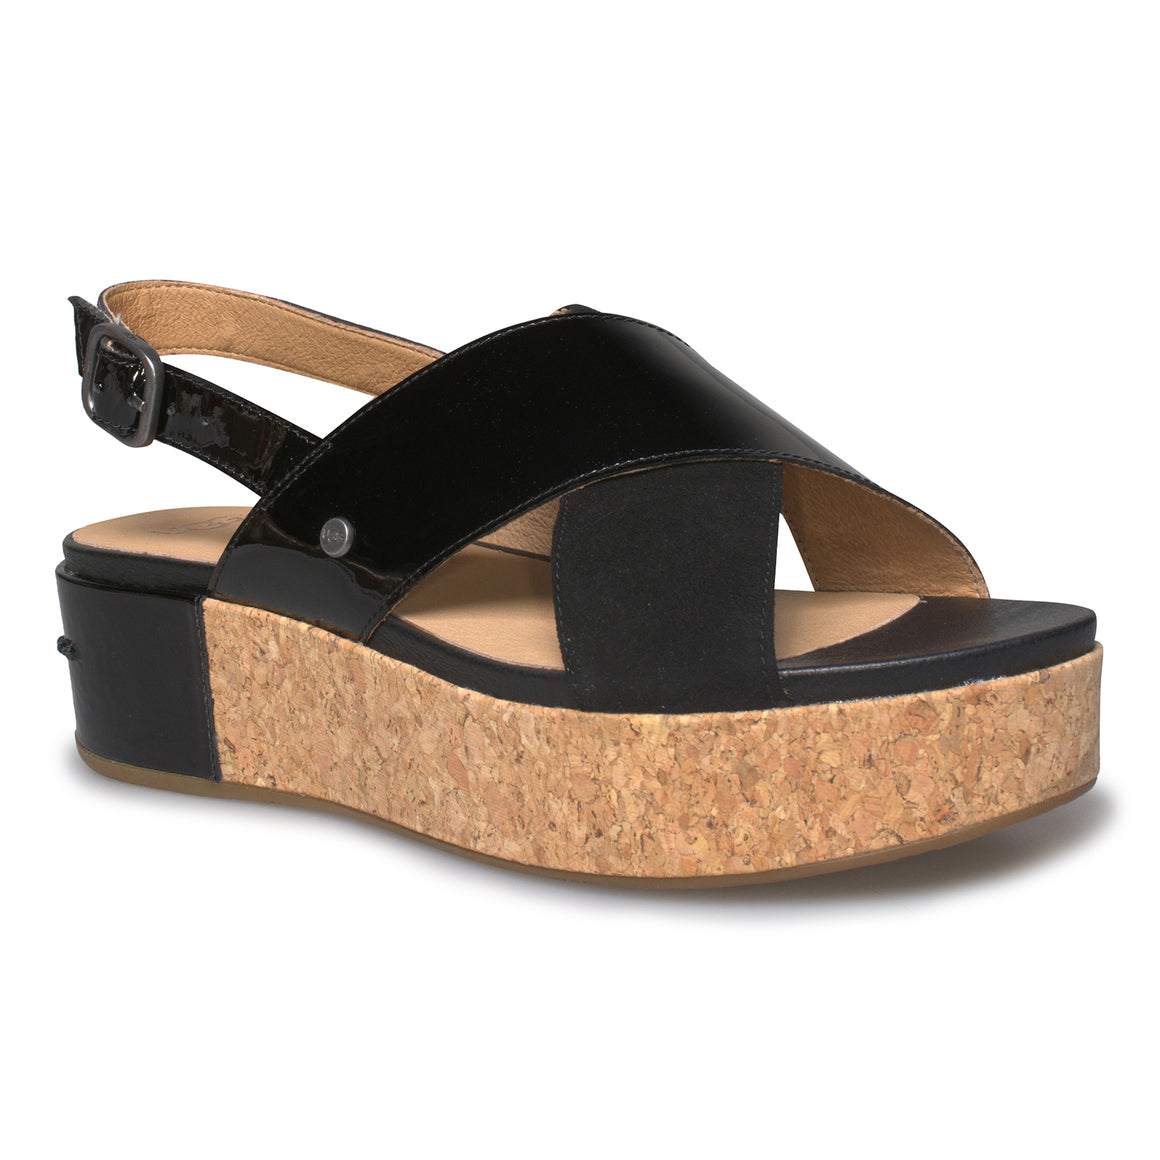 UGG Shoshana Black Sandals - Women's